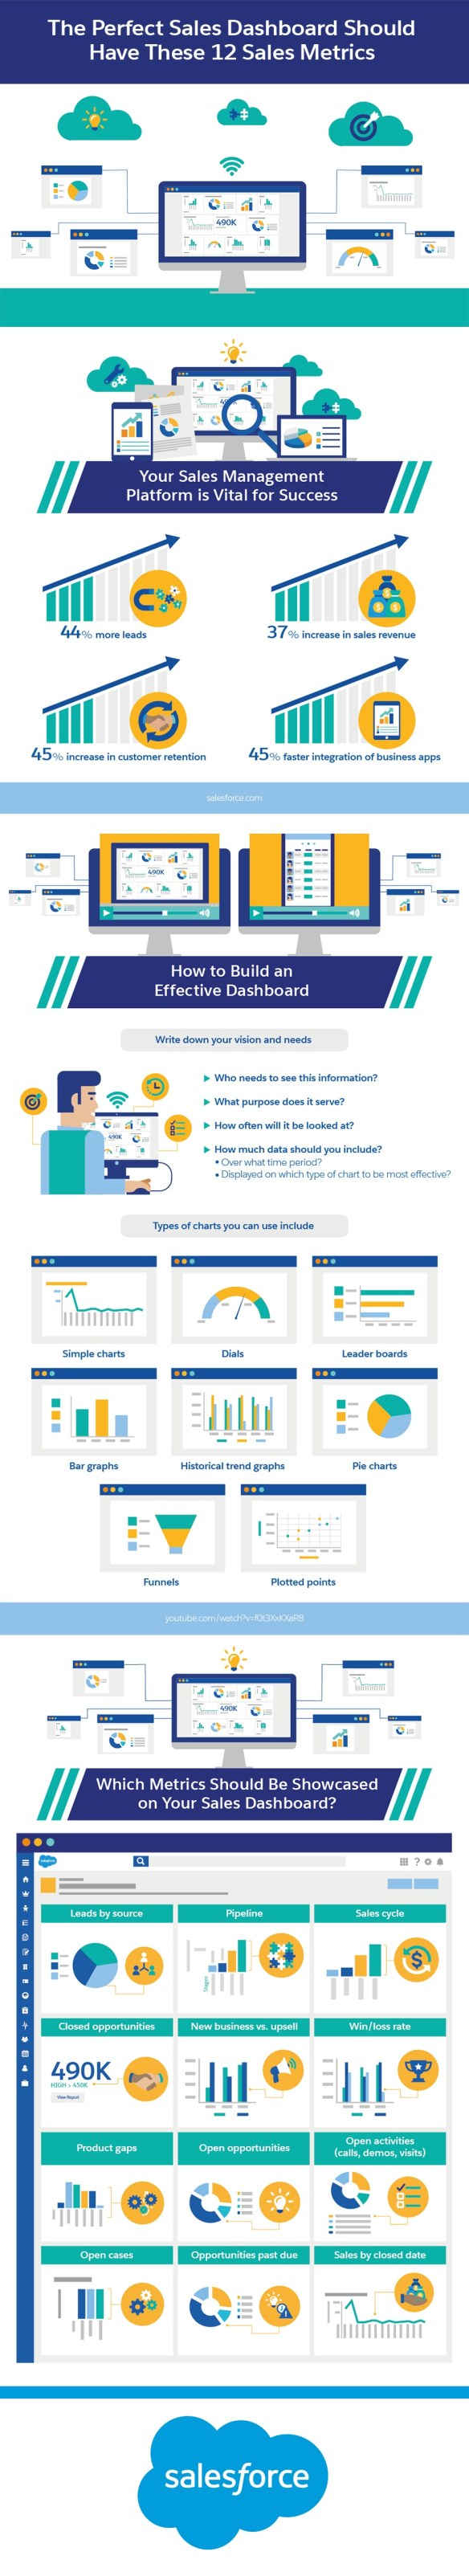 The Perfect Sales Dashboard Should Have These 12 Sales Metrics